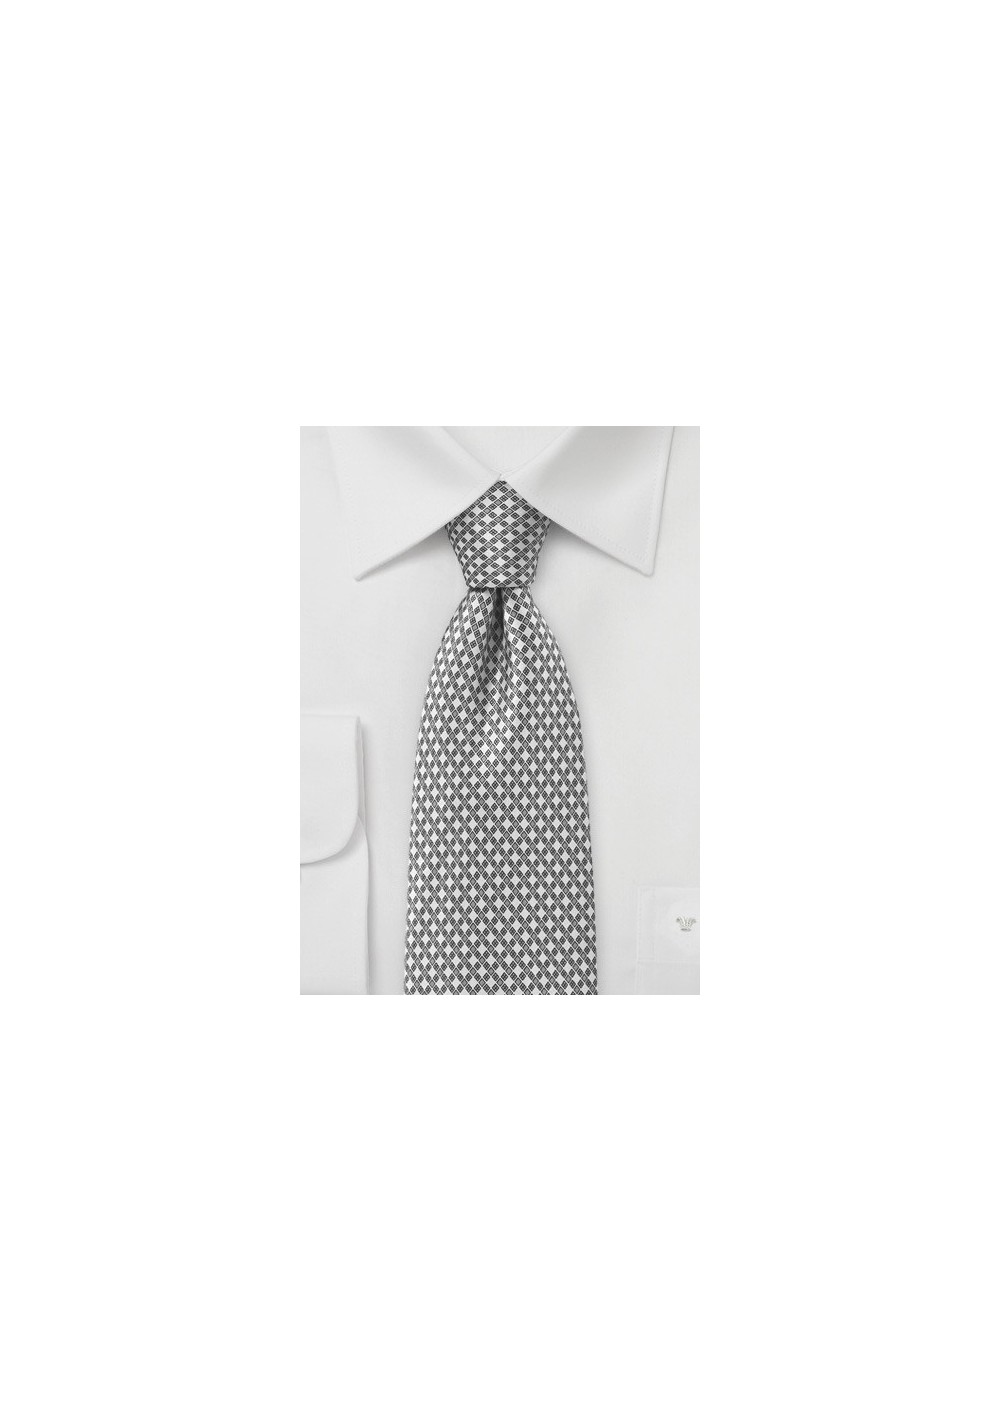 Graphic Tie in Ivory and Charcoal